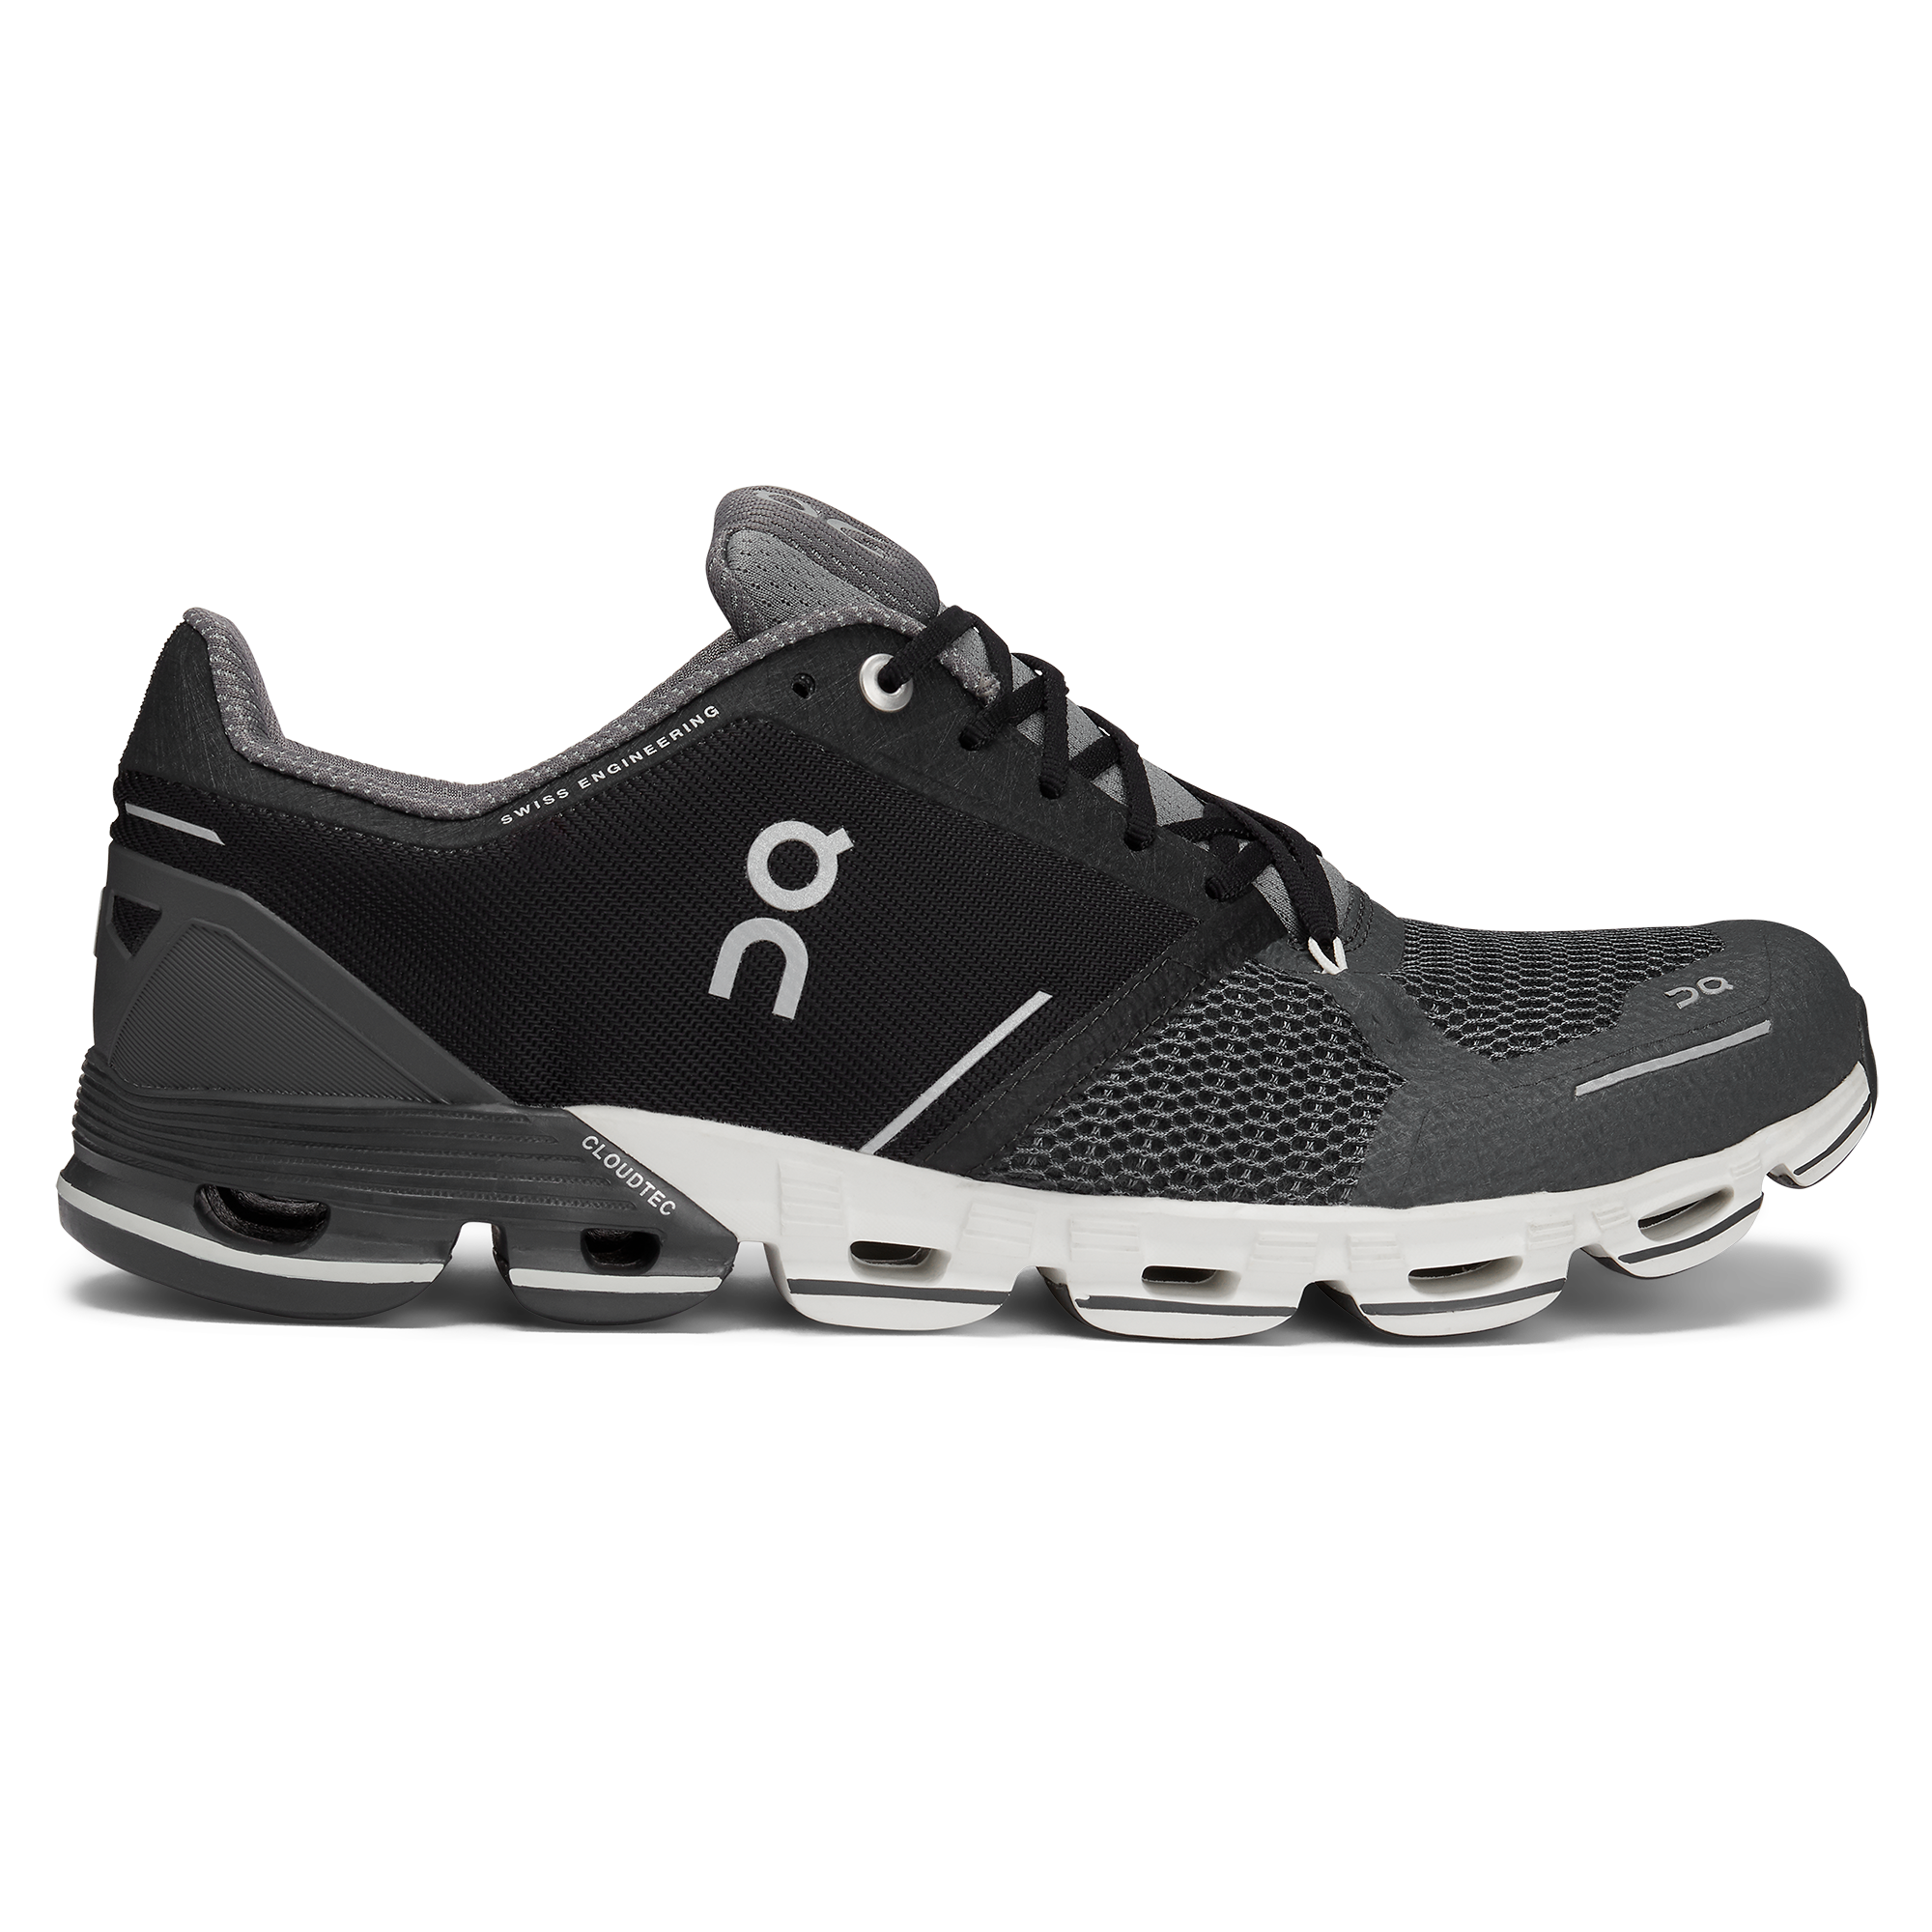 823f68c1ab28a Cloudflyer - Lightweight Stability Running Shoe | On